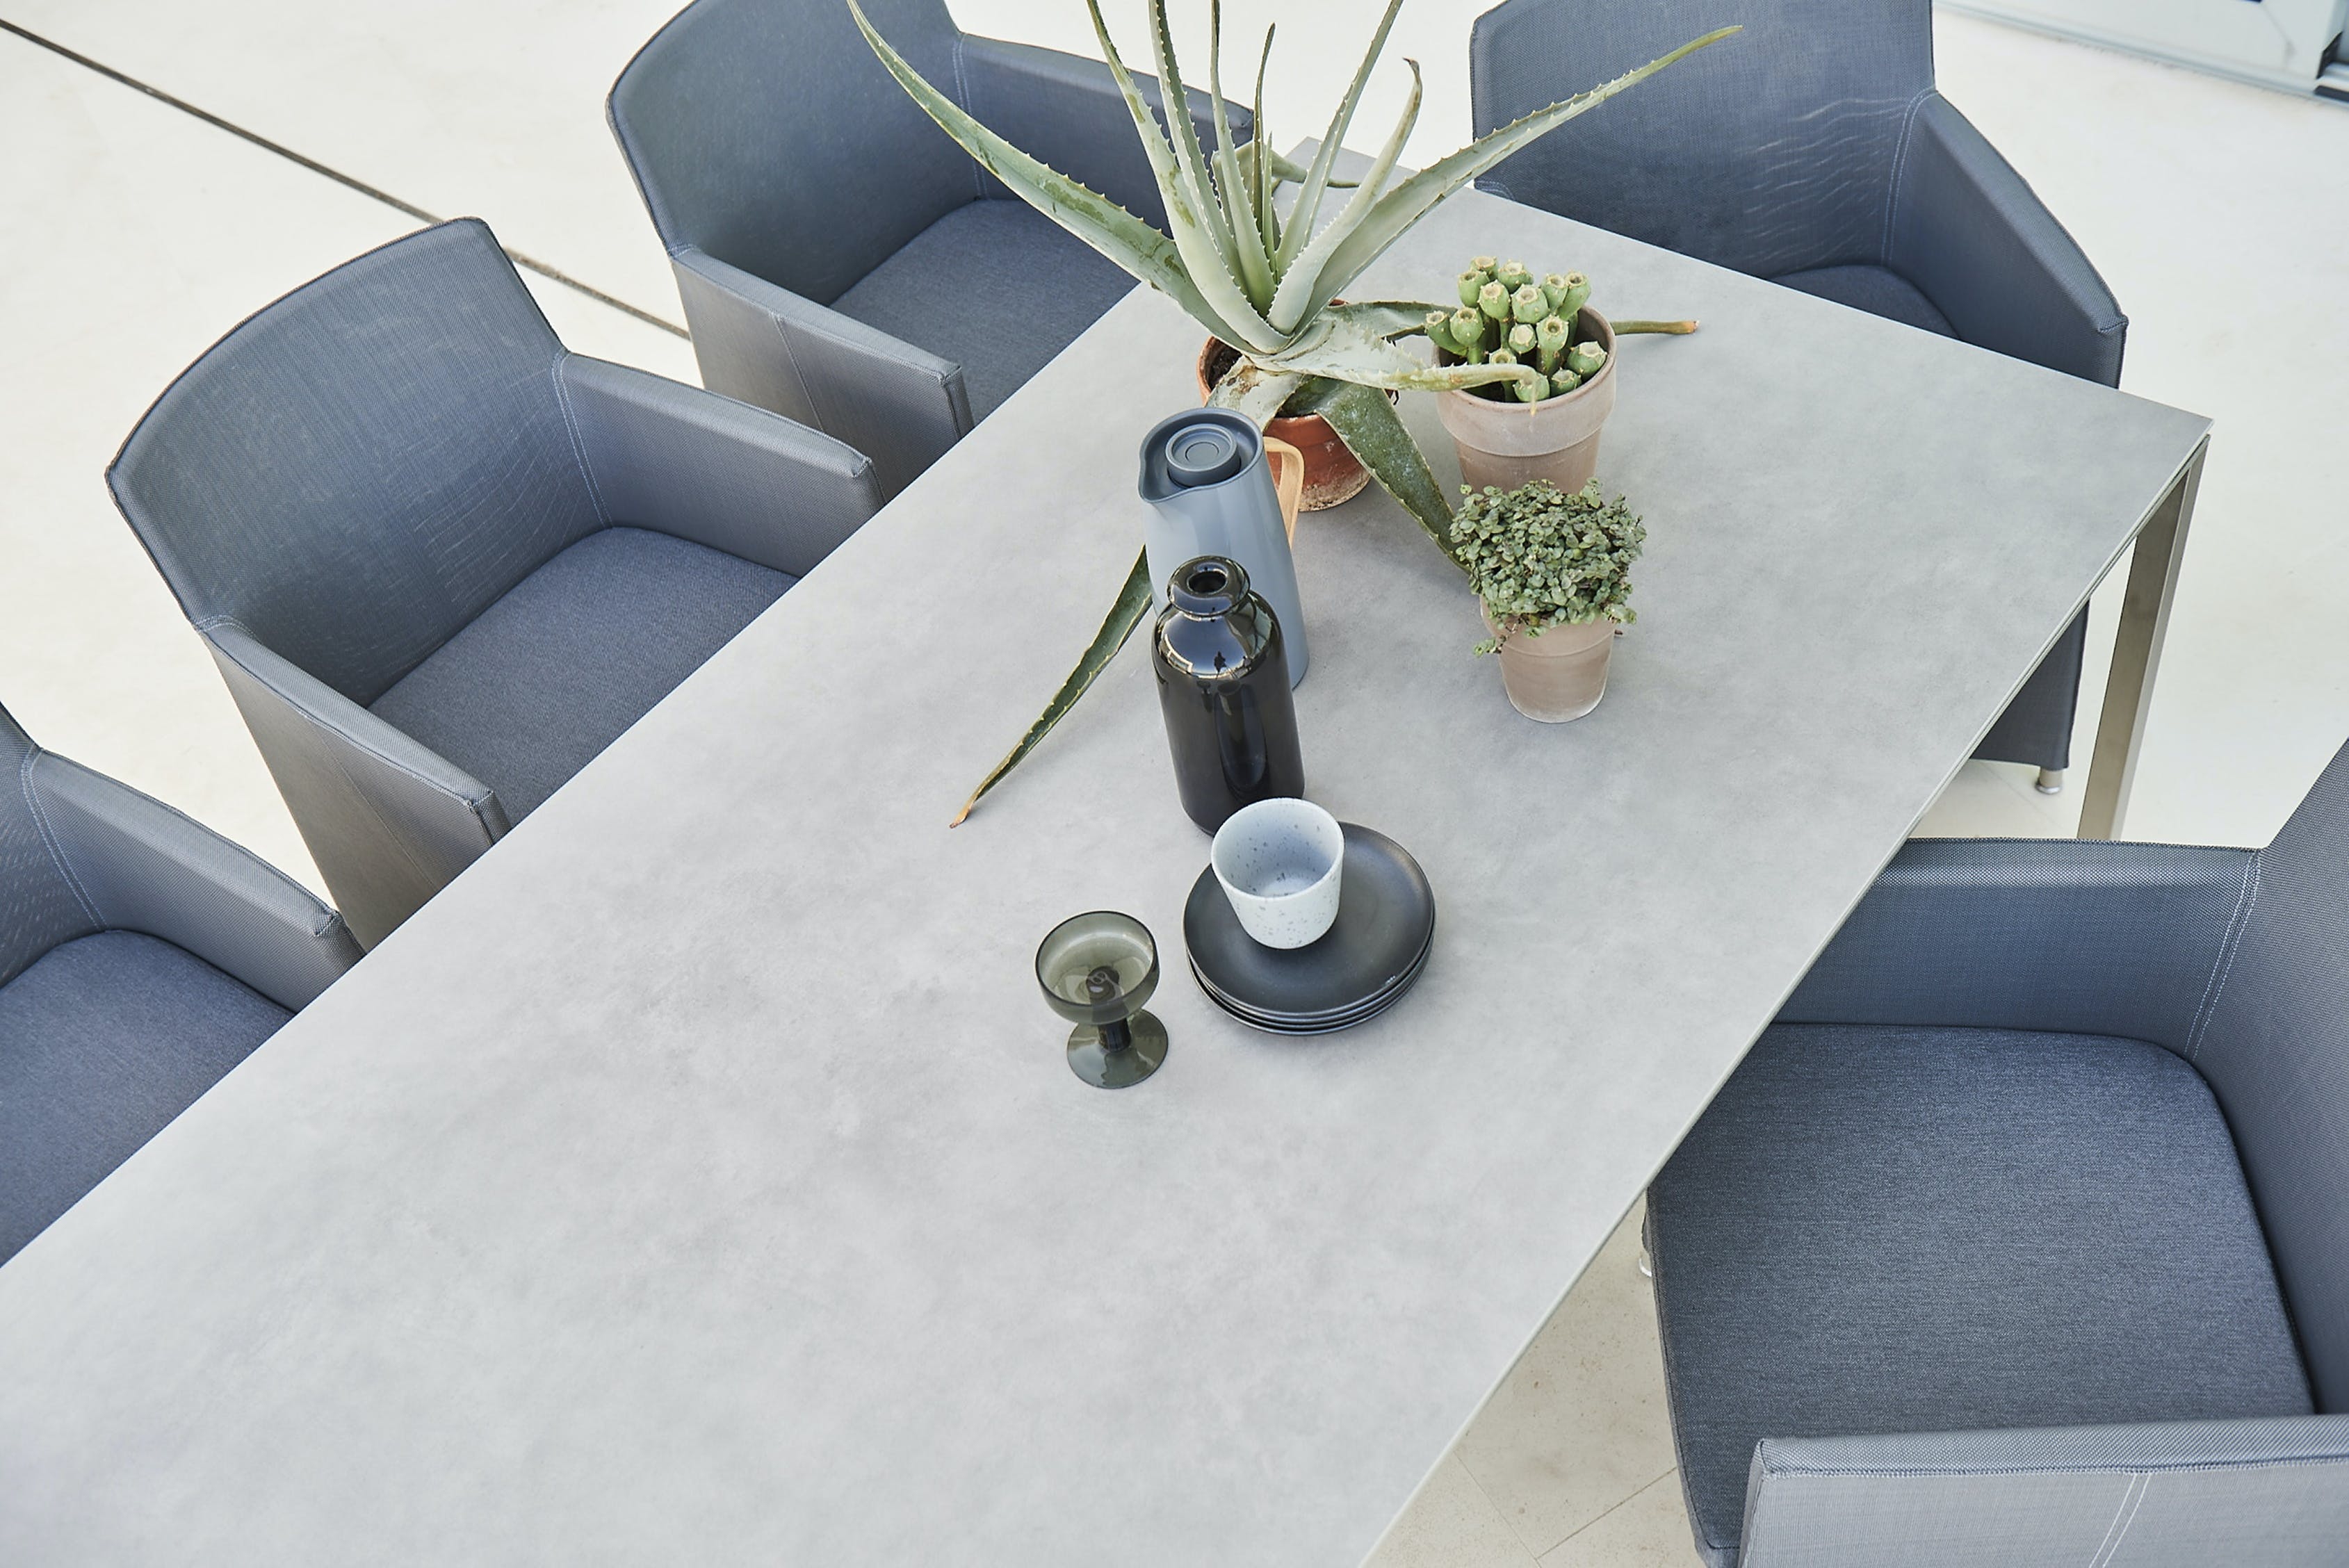 Diamond Chair Grey Pure Table Stainless Concrete 210X100 F7